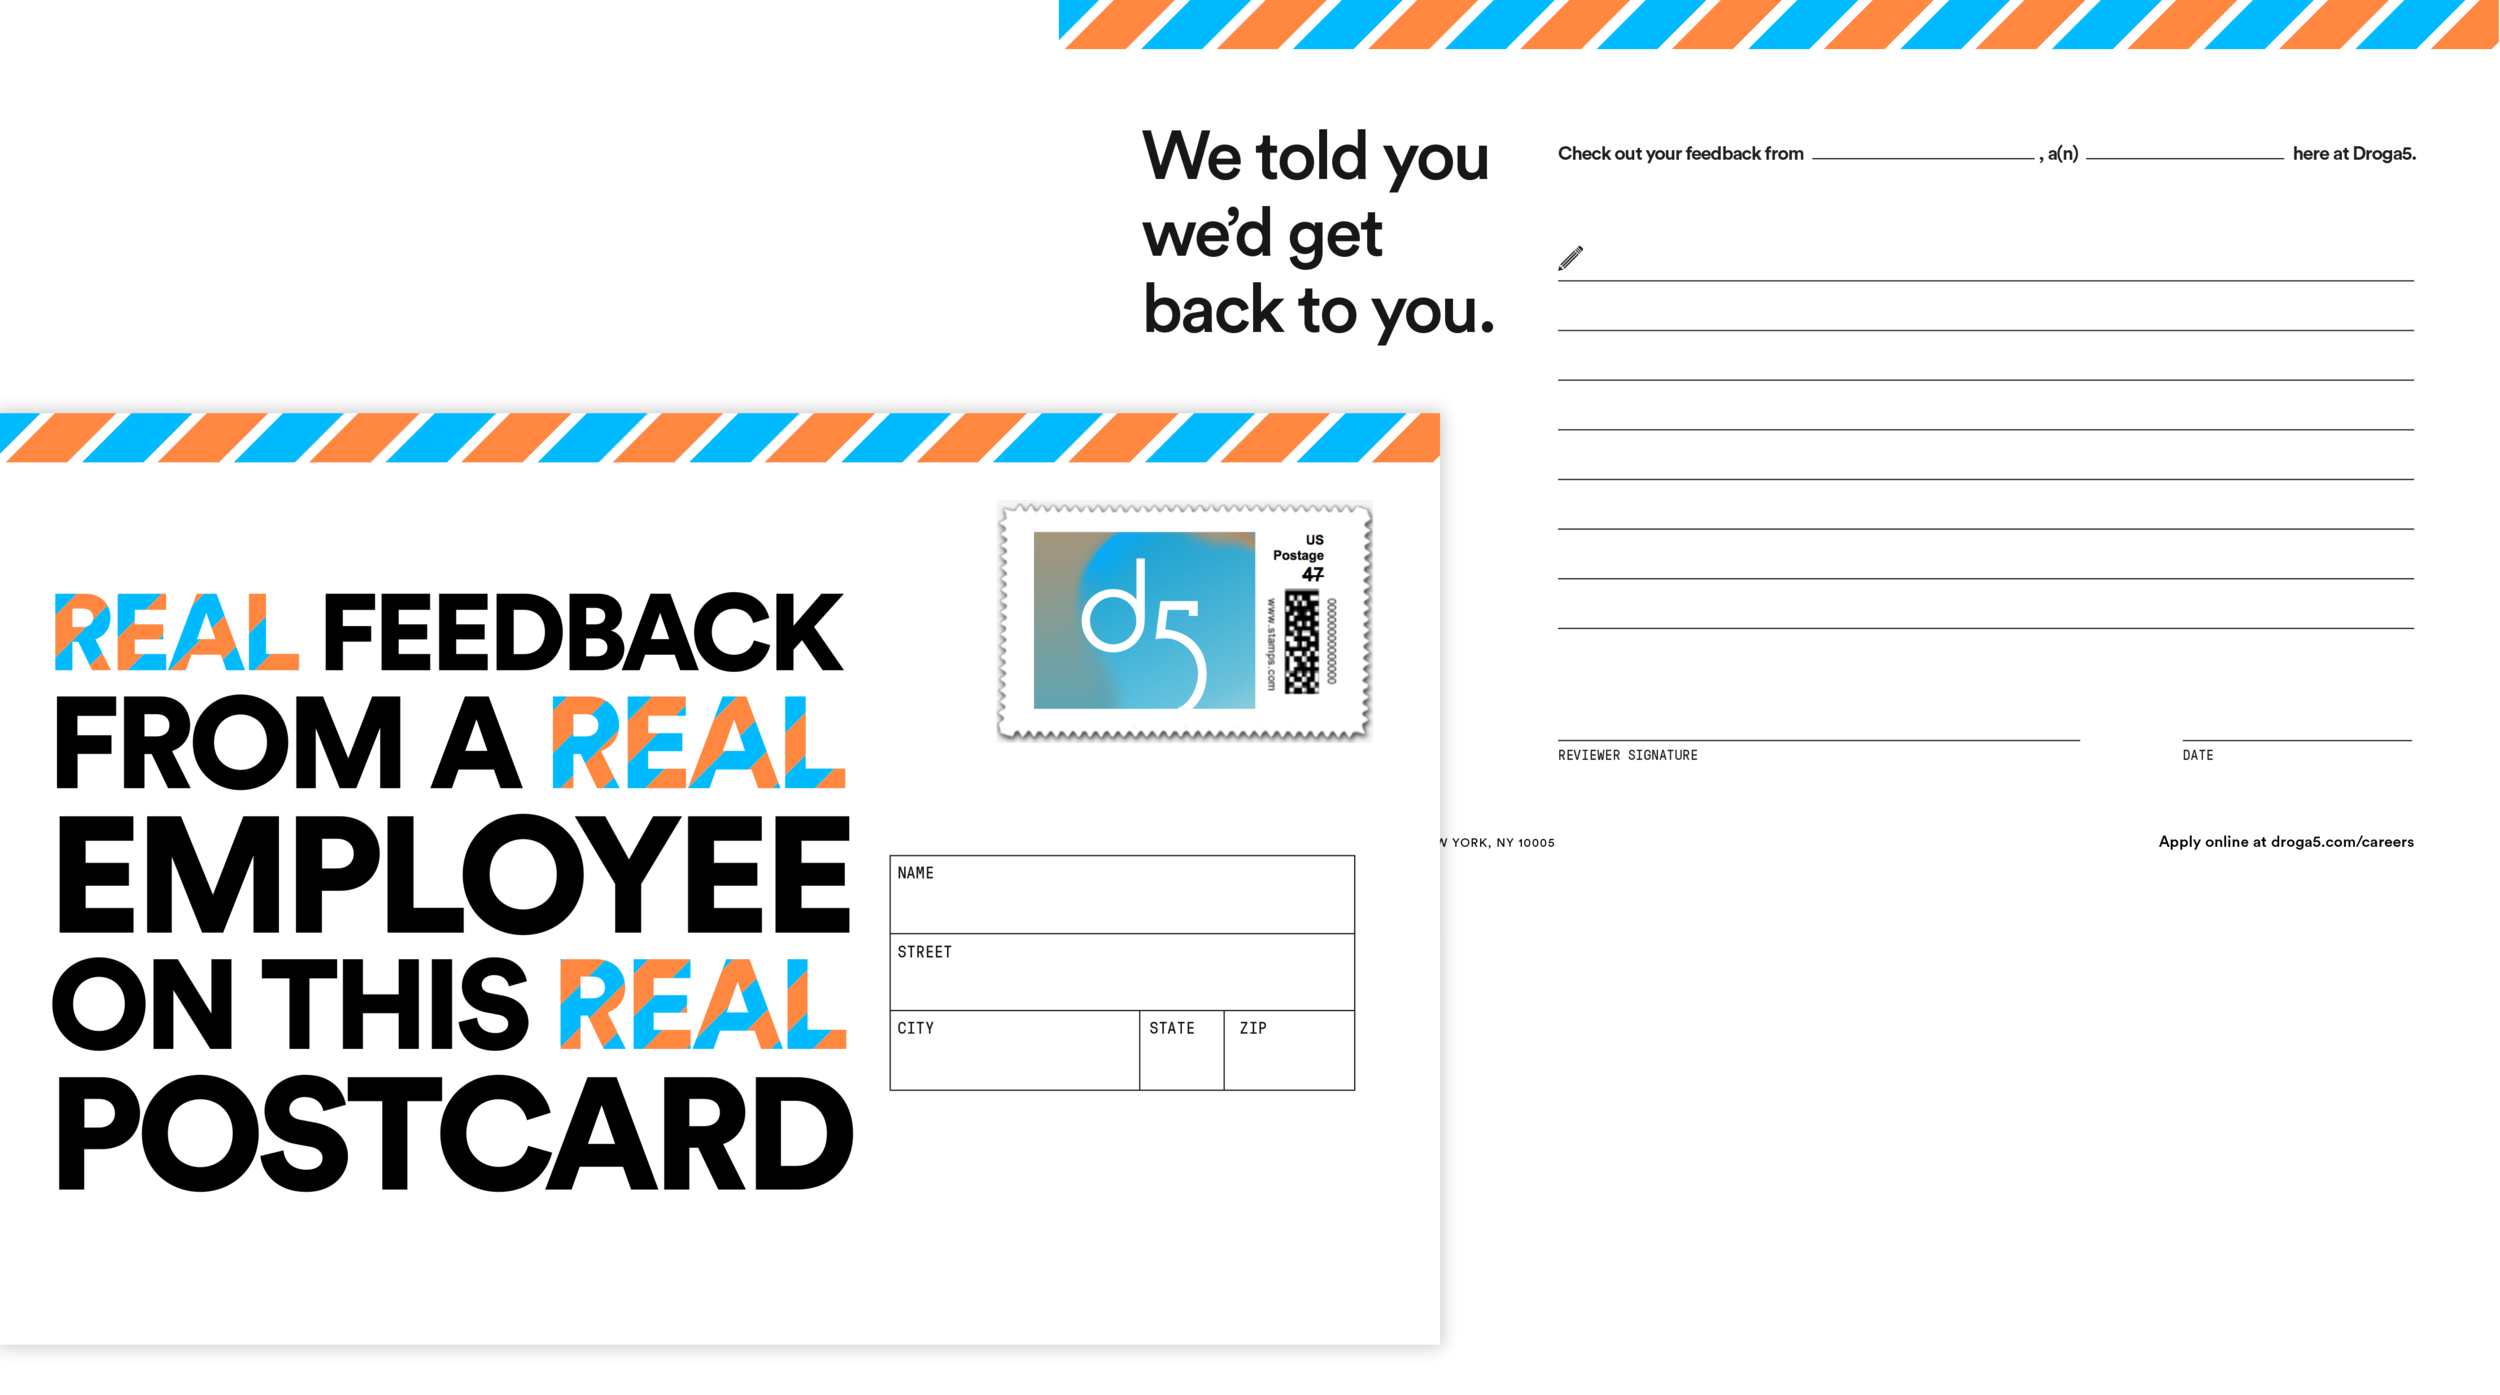 This was the postcard attendees received in the mail, each filled out by a Droga5 employee.